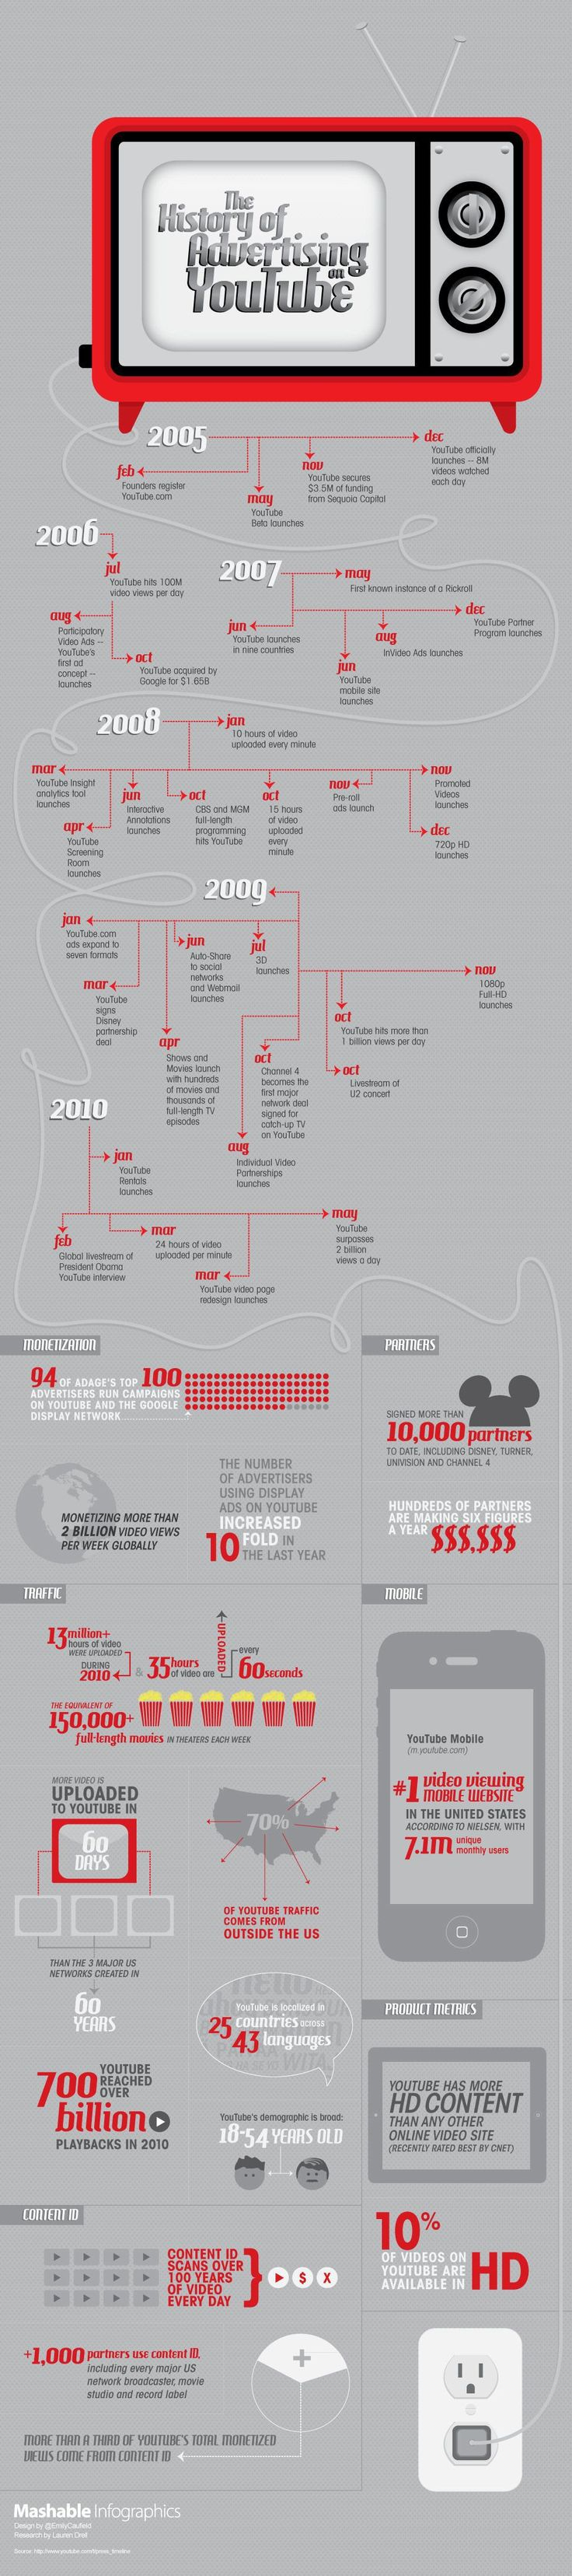 44 Best Infographics Images On Pinterest Info Graphics How To Wire And Instill A Breaker Box Electrical Online 4u Youtube Advertising